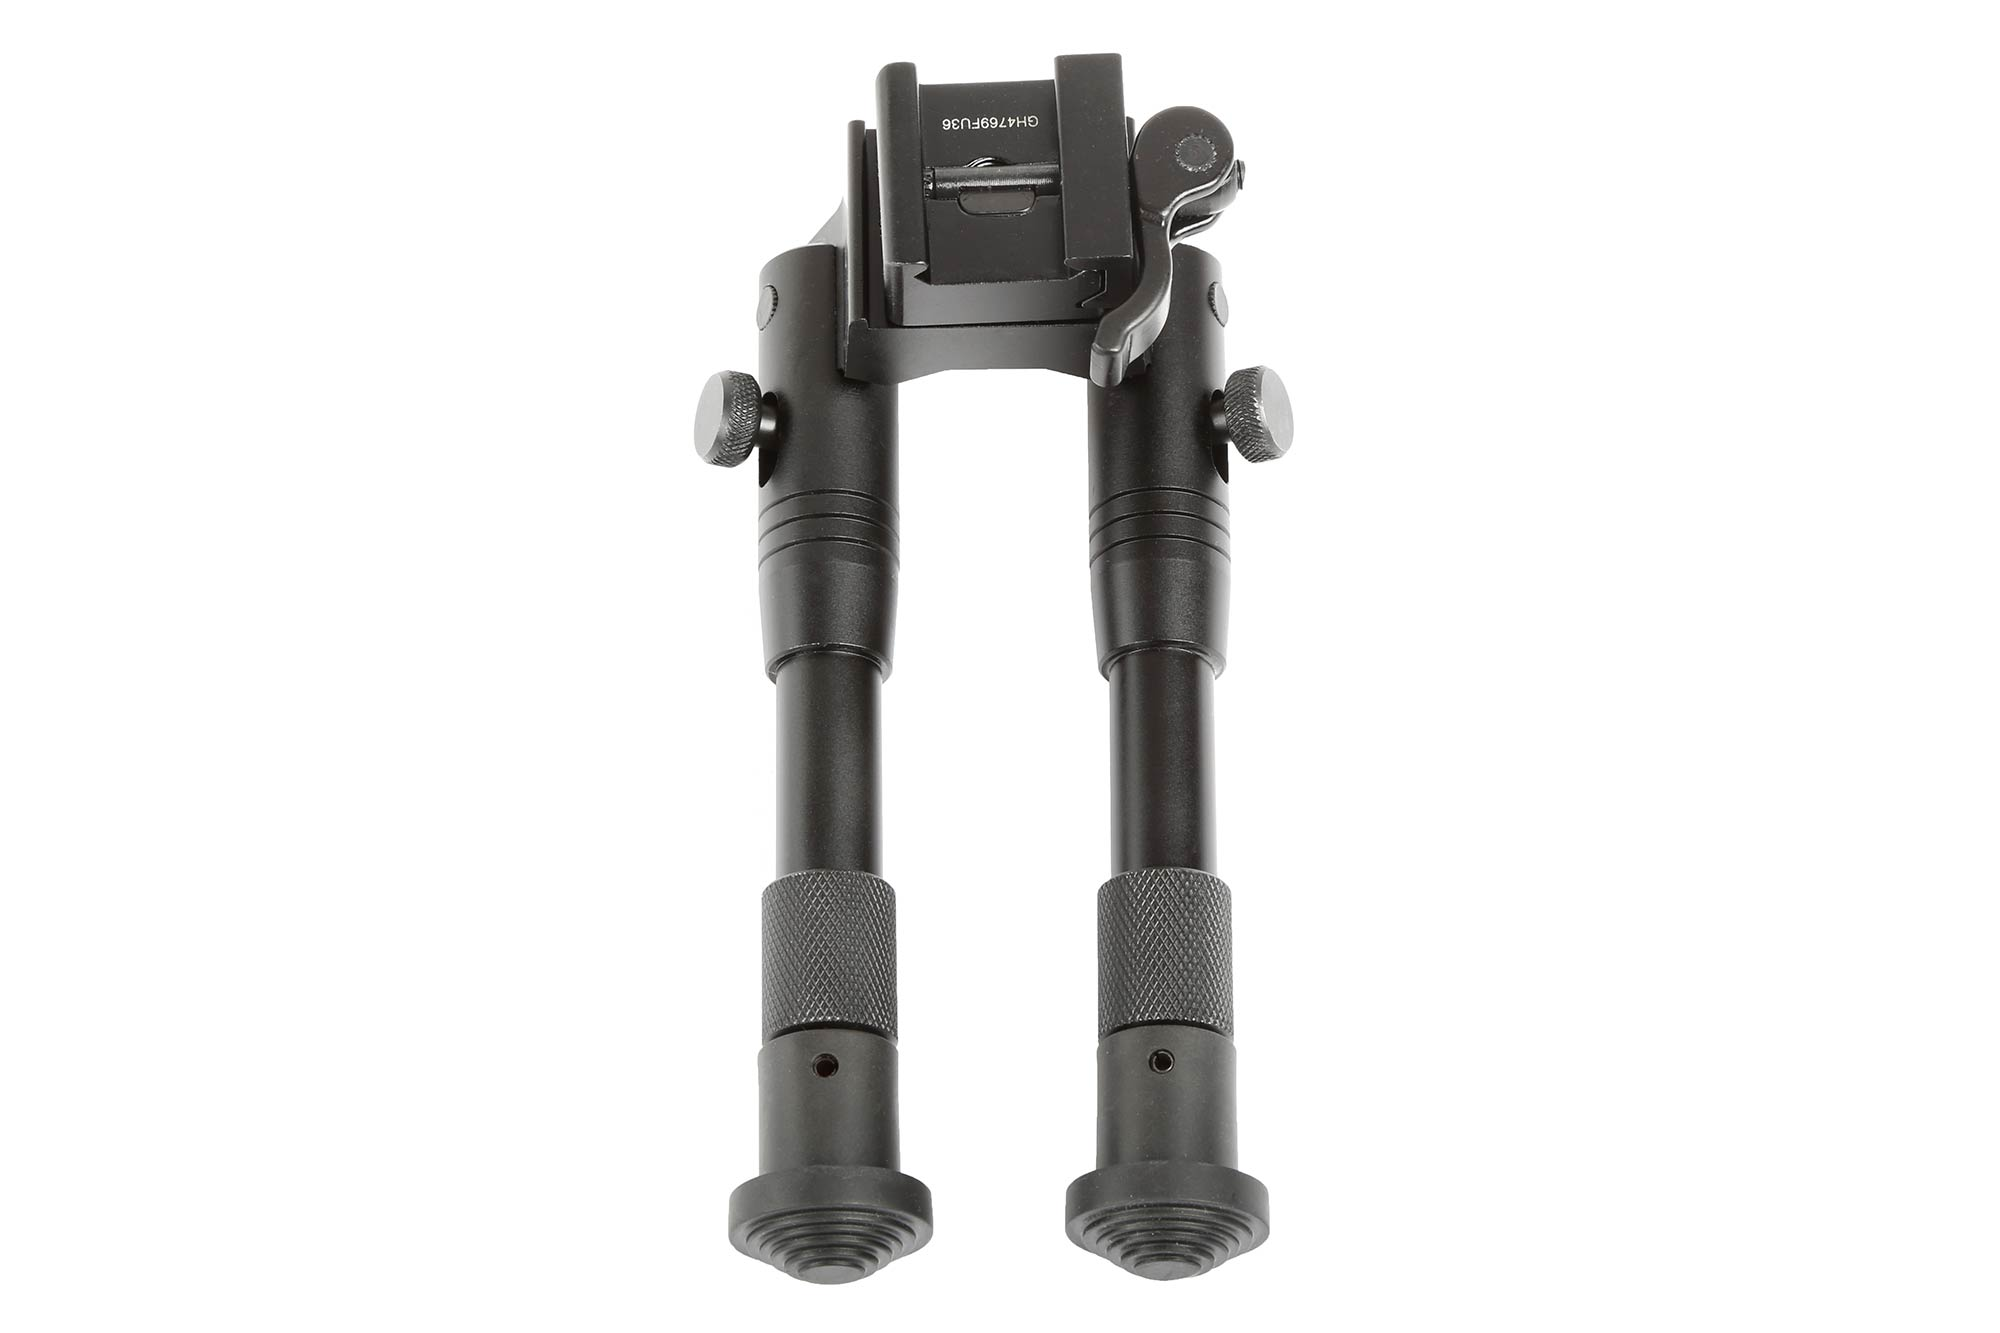 Leapers UTG New Gen Pro Shooters Quick Detach Bipod - 6.2 to 6.7""